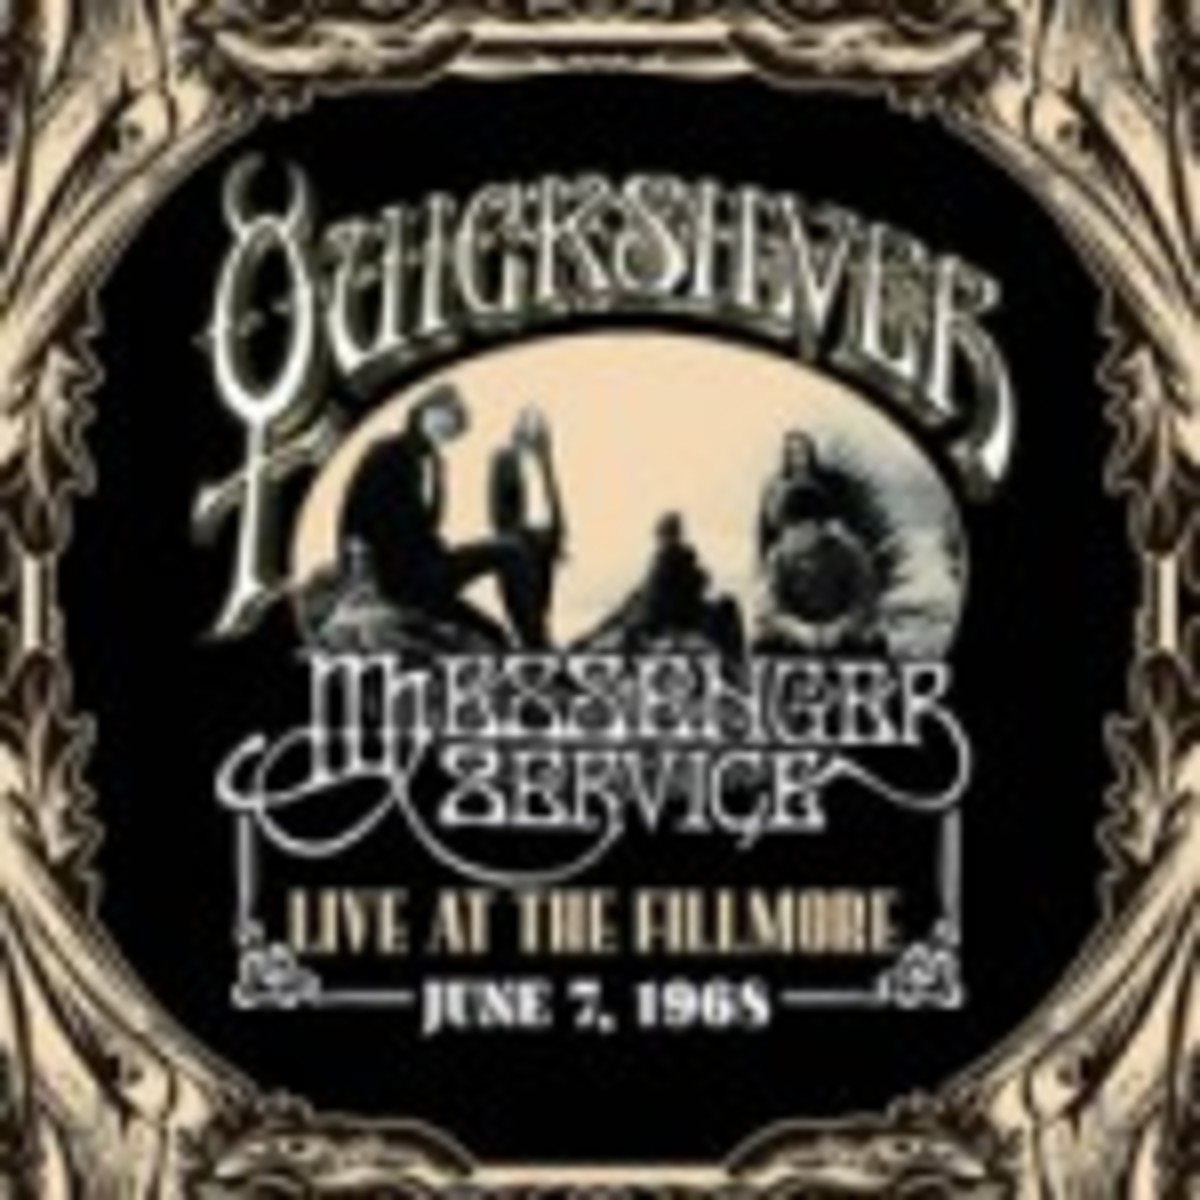 Quicksilver Messenger Service Live at the Fillmore